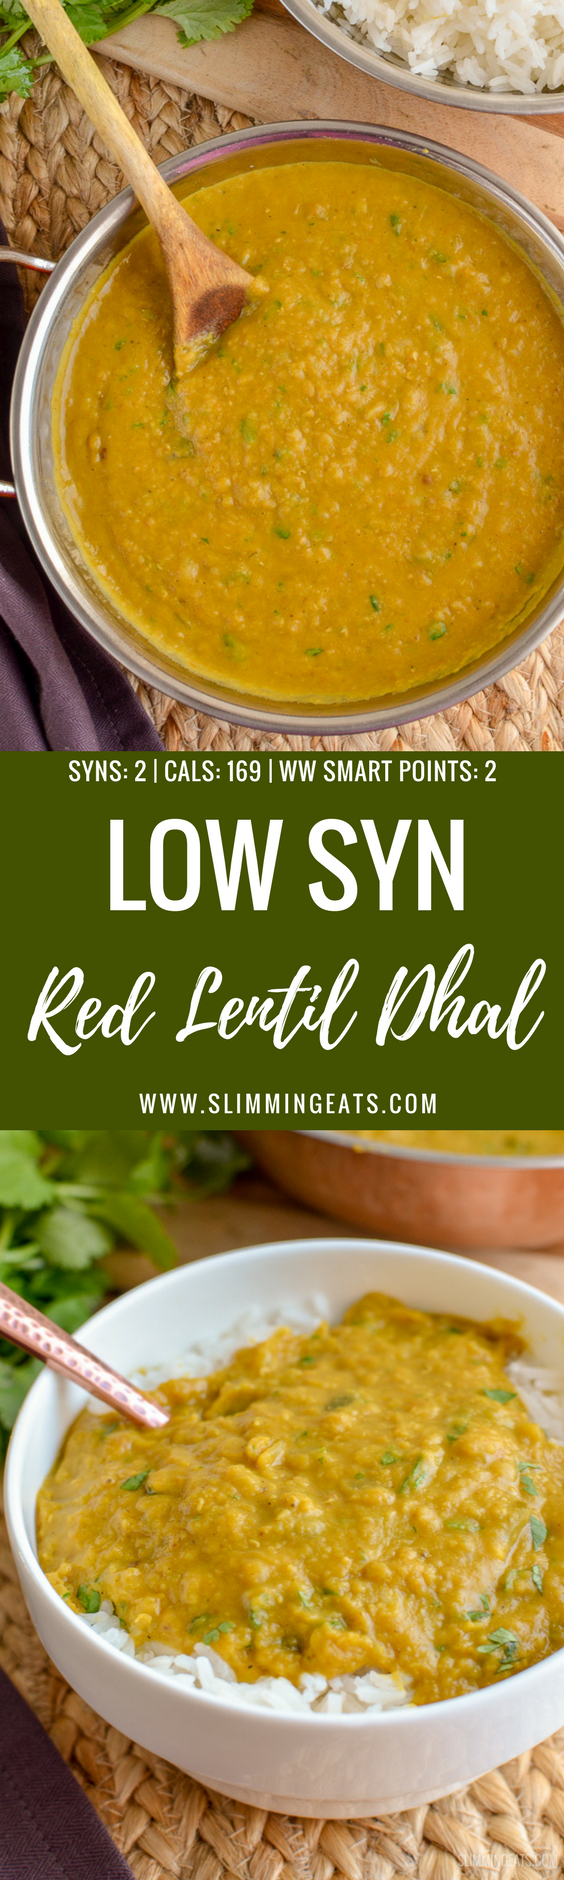 Simple but delicious Low Syn Red Lentil Dhal - pure comfort in a bowl and a perfect recipe for freezing leftovers - gluten free, dairy free, vegan, Slimming World and Weight Watchers friendly | www.slimmingeats.com